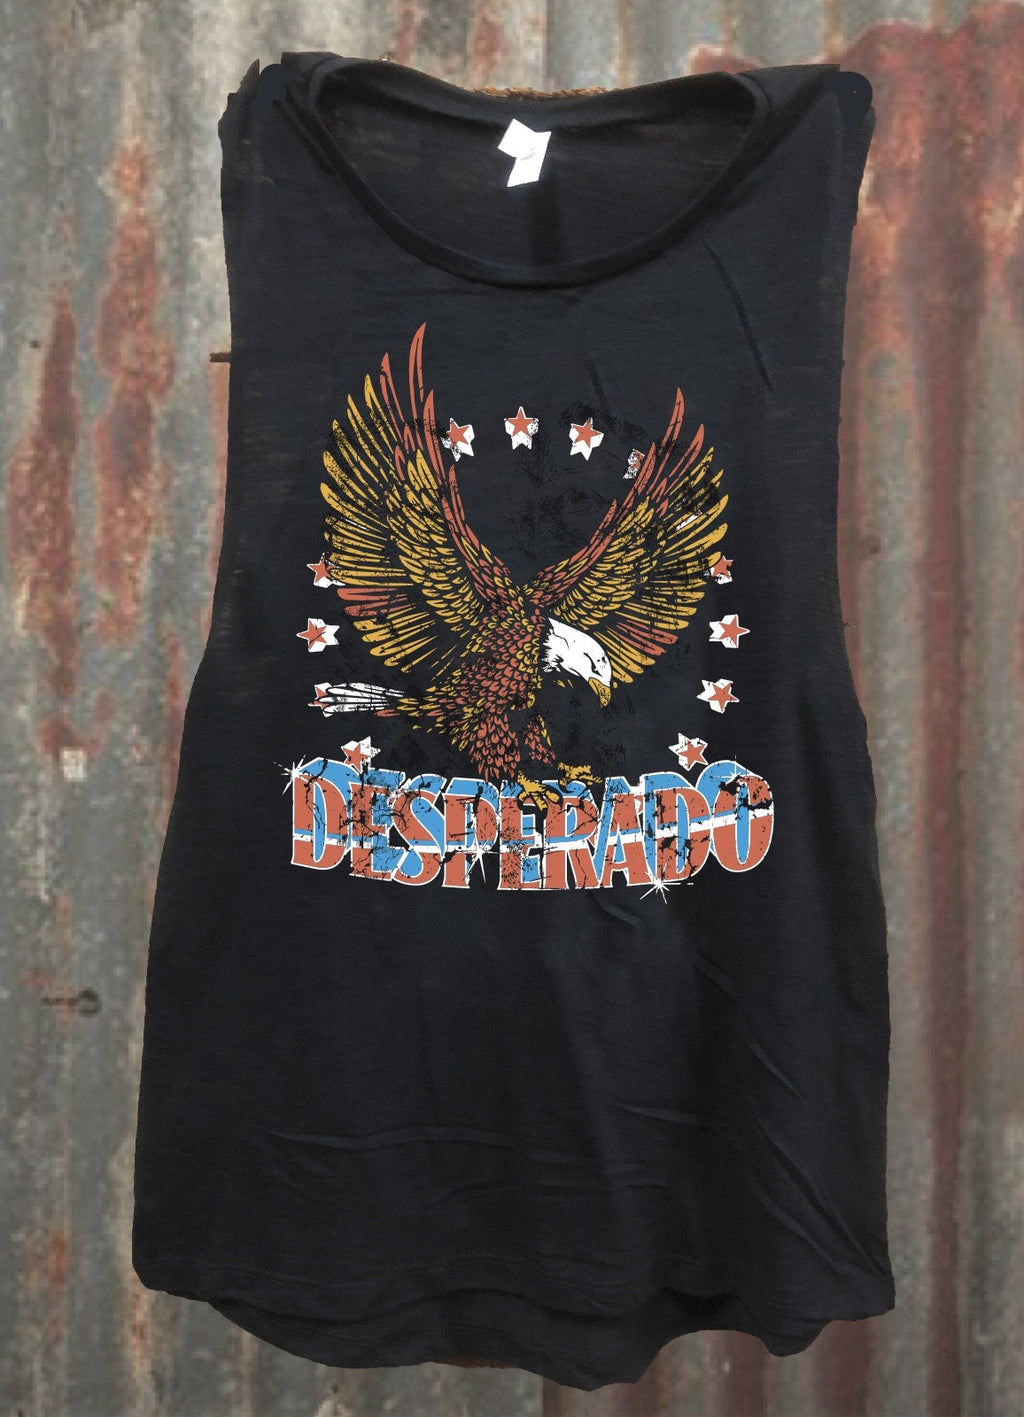 Desperado Muscle Tank Top